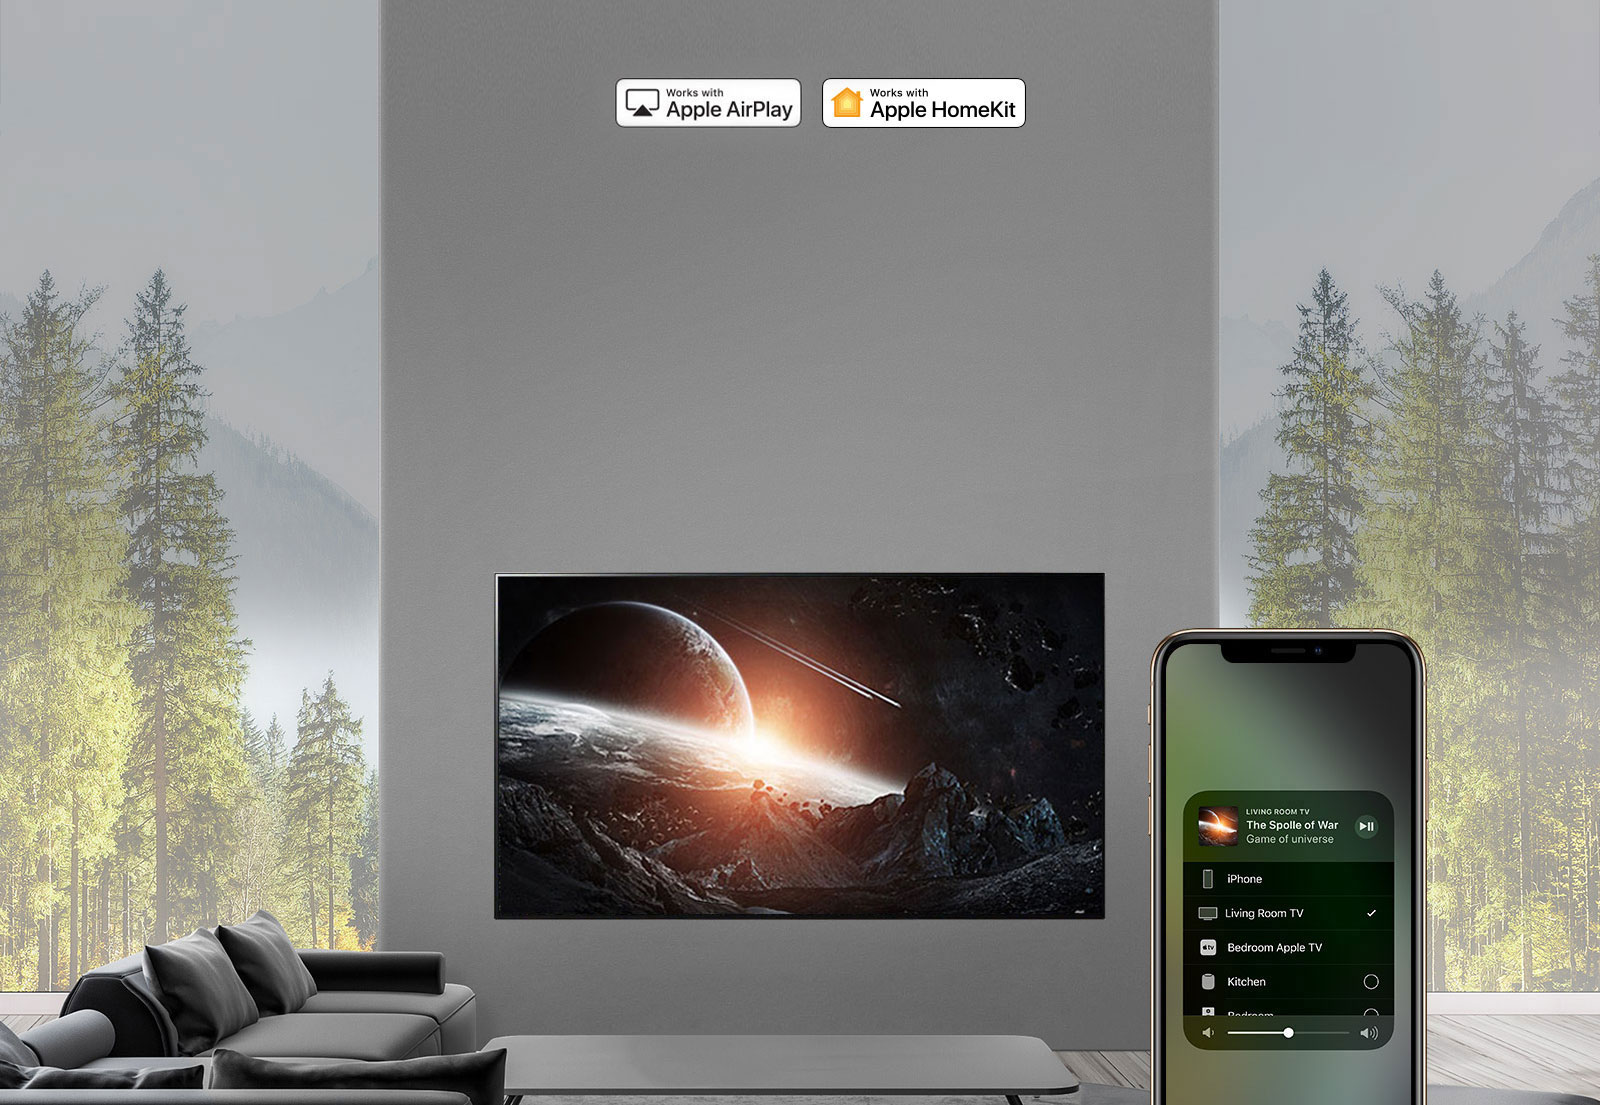 LG Apple AirPlay OLED TV